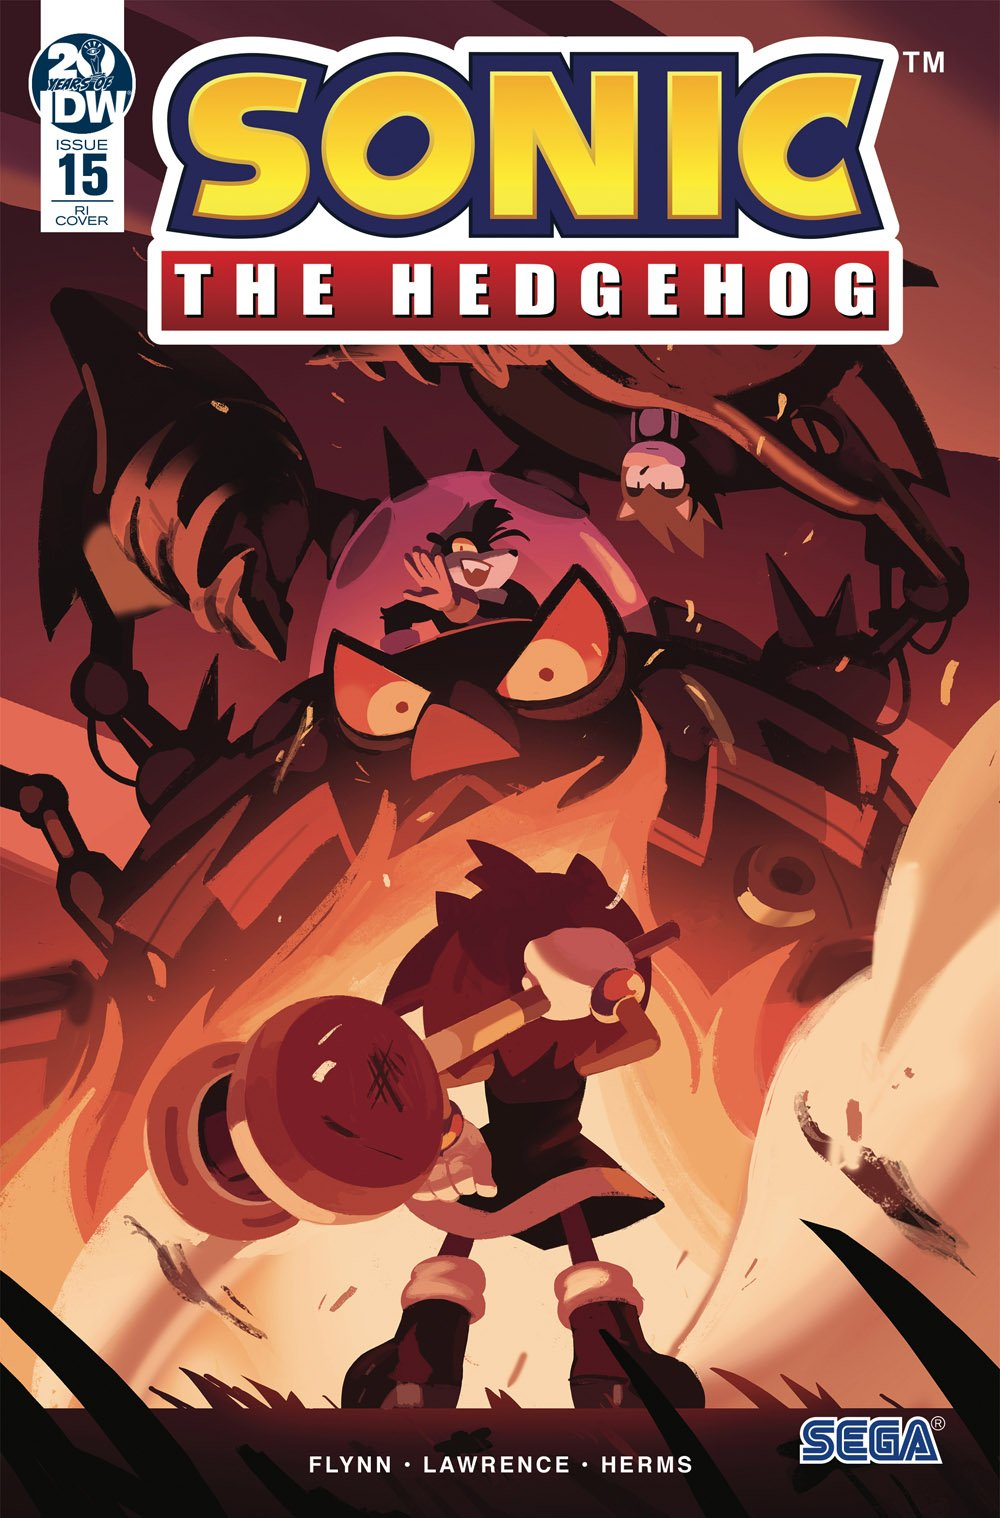 Sonic the Hedgehog 015 (March 2019) (retailer incentive)